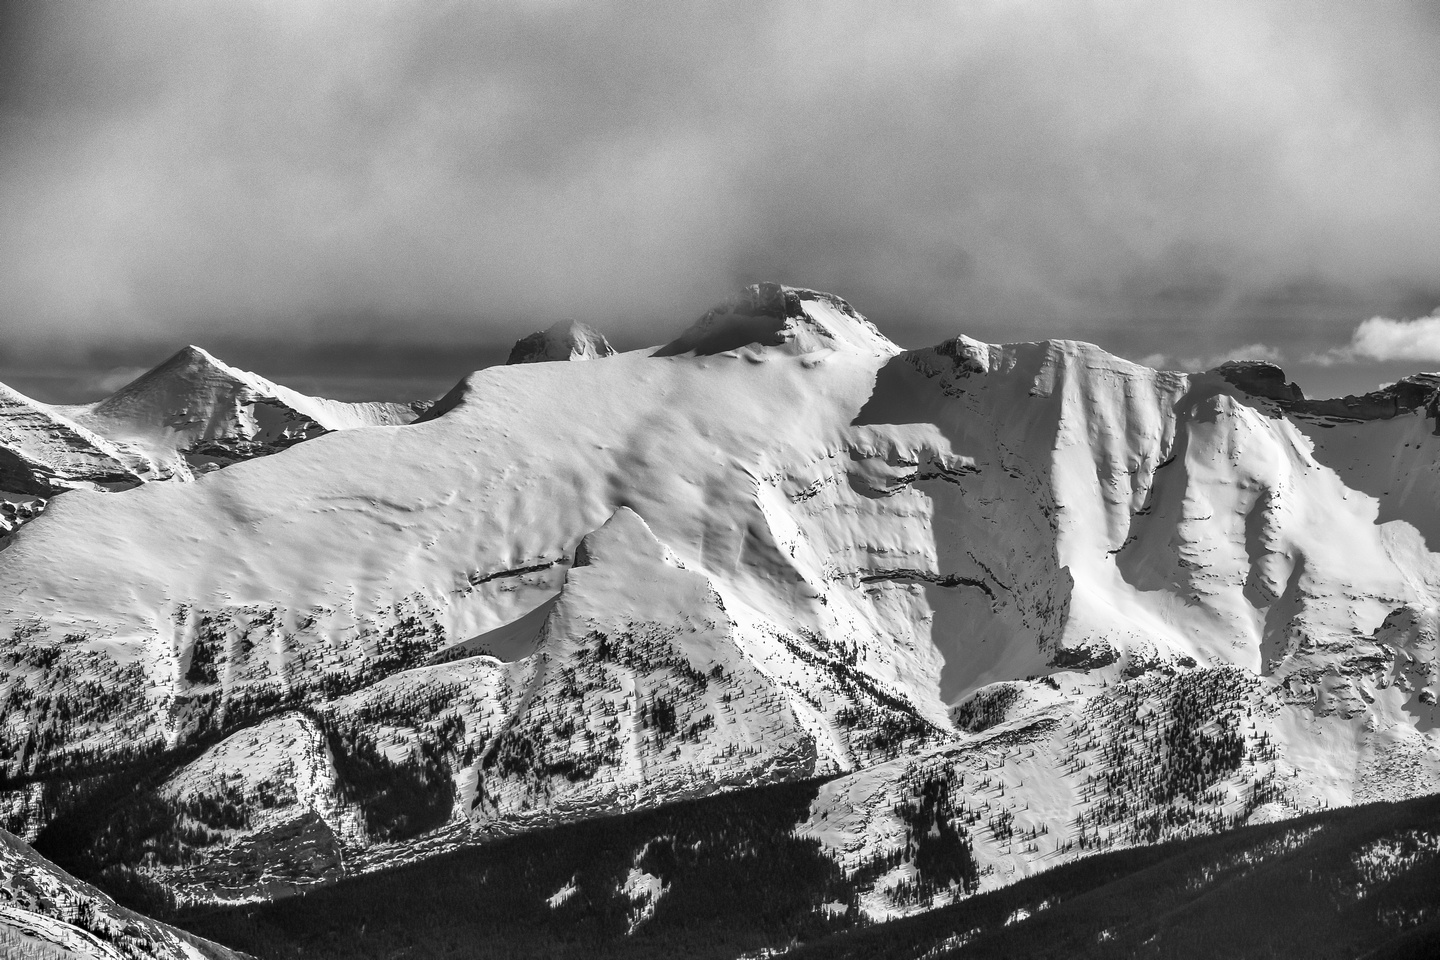 Mount Sparrowhawk with Read's Tower in front and Lougheed III and IV (Wind Mountain) at left.